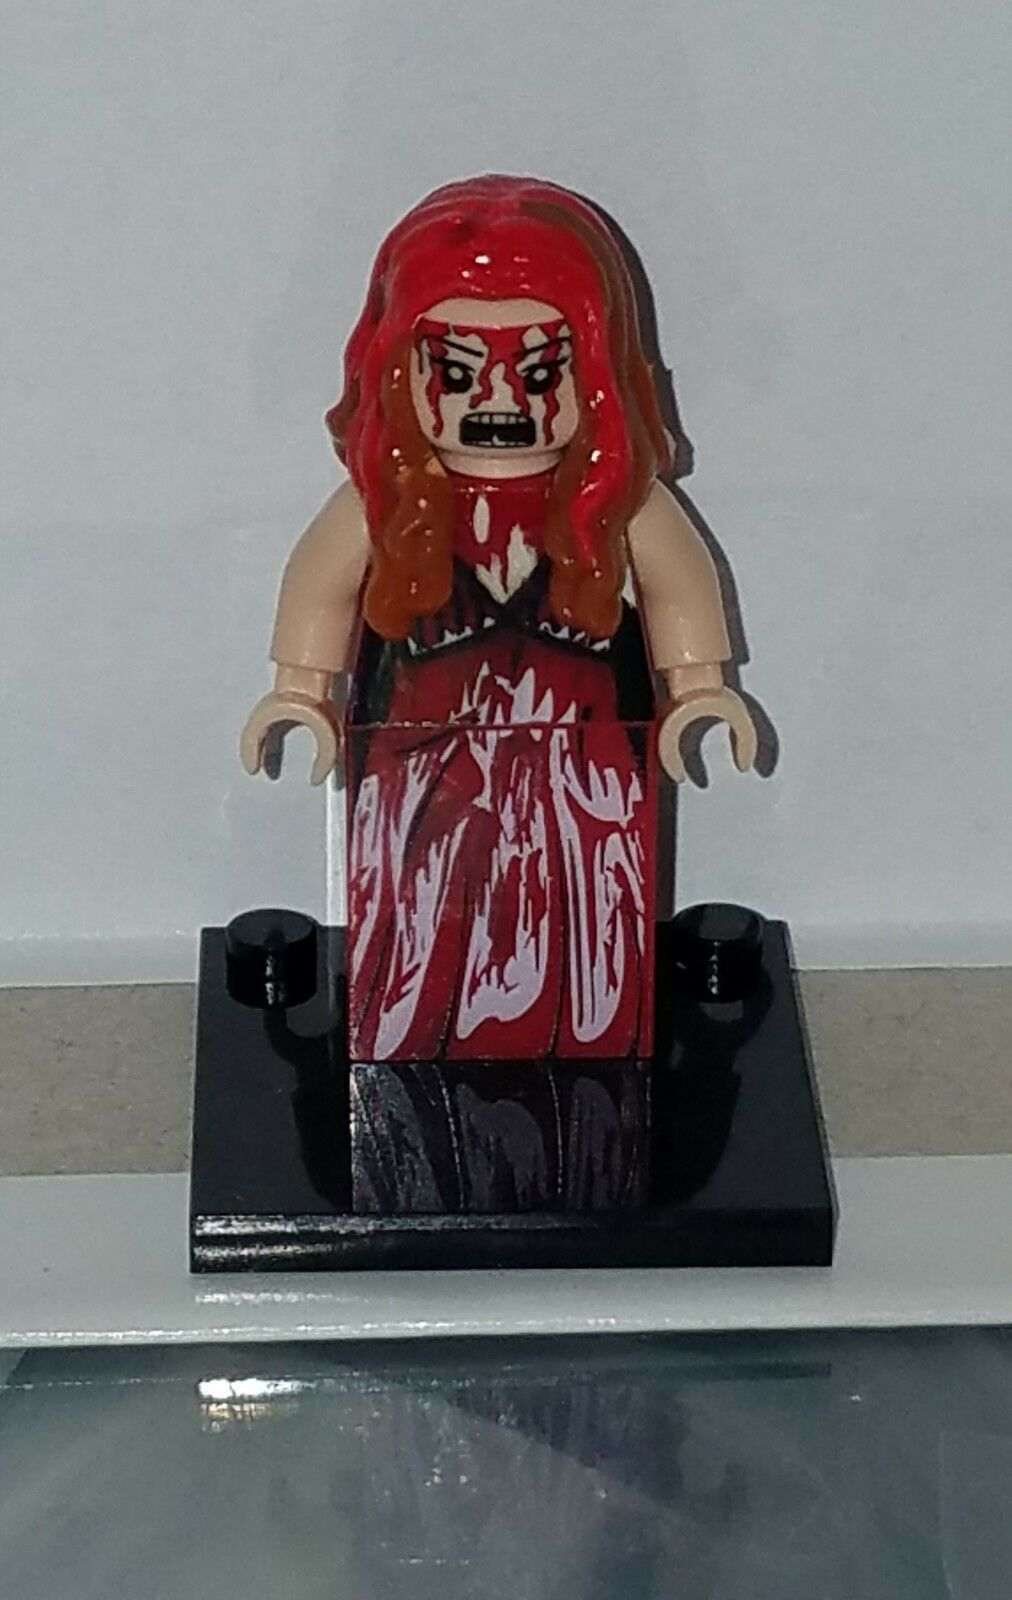 LEGO FROM MOVIE CARRIE BLOODY BLOODY BLOODY CARRIE f0a598